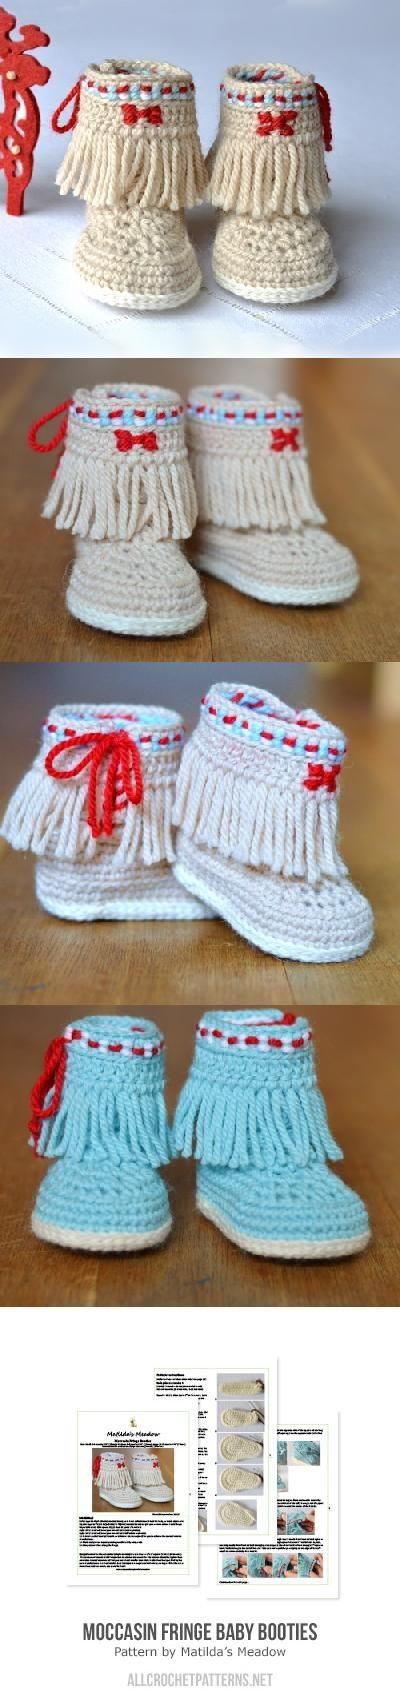 Baby Moccasin Fringe Booties Crochet Pattern